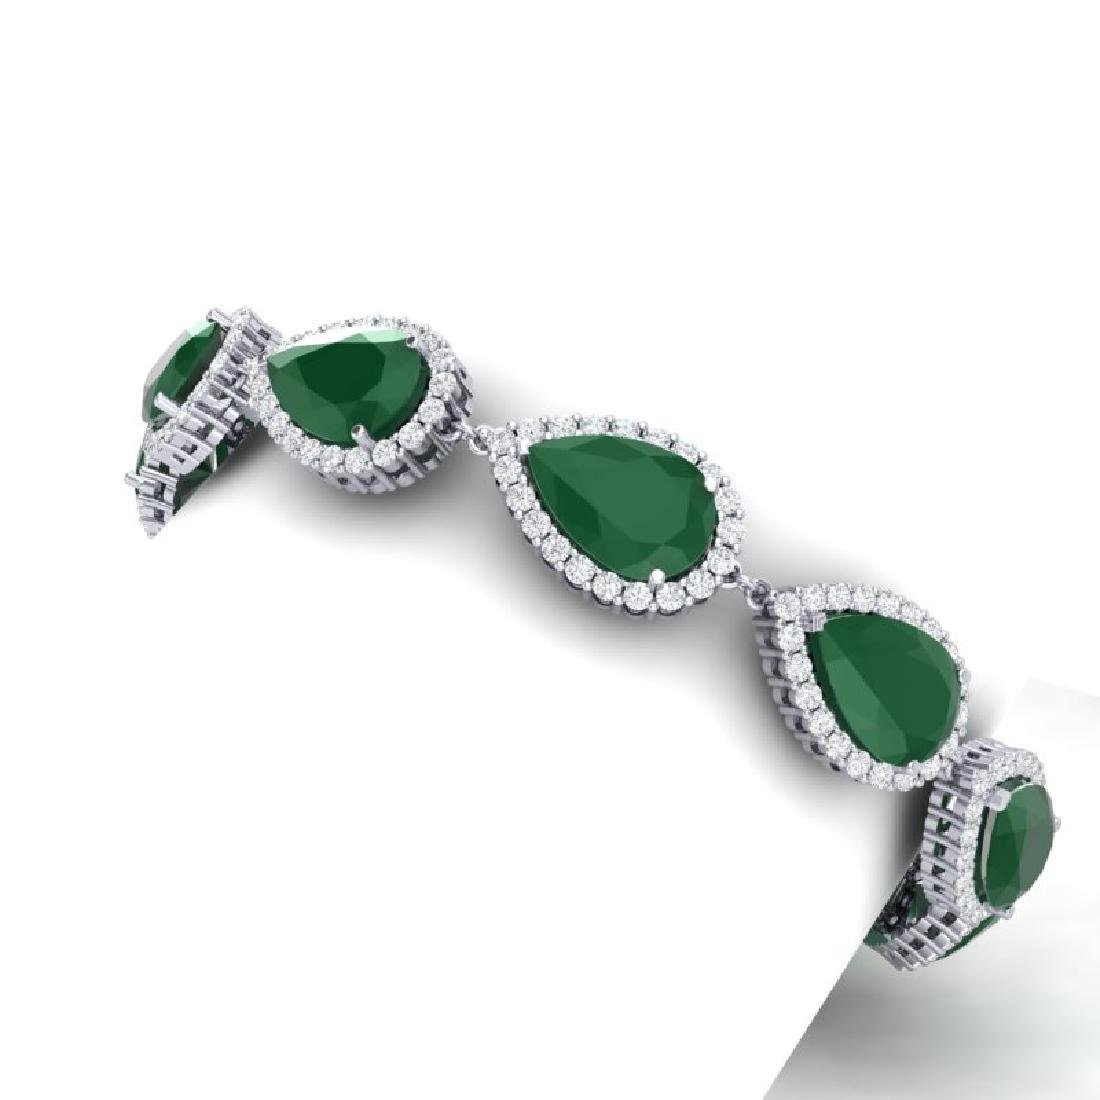 42 CTW Royalty Emerald & VS Diamond Bracelet 18K White - 2